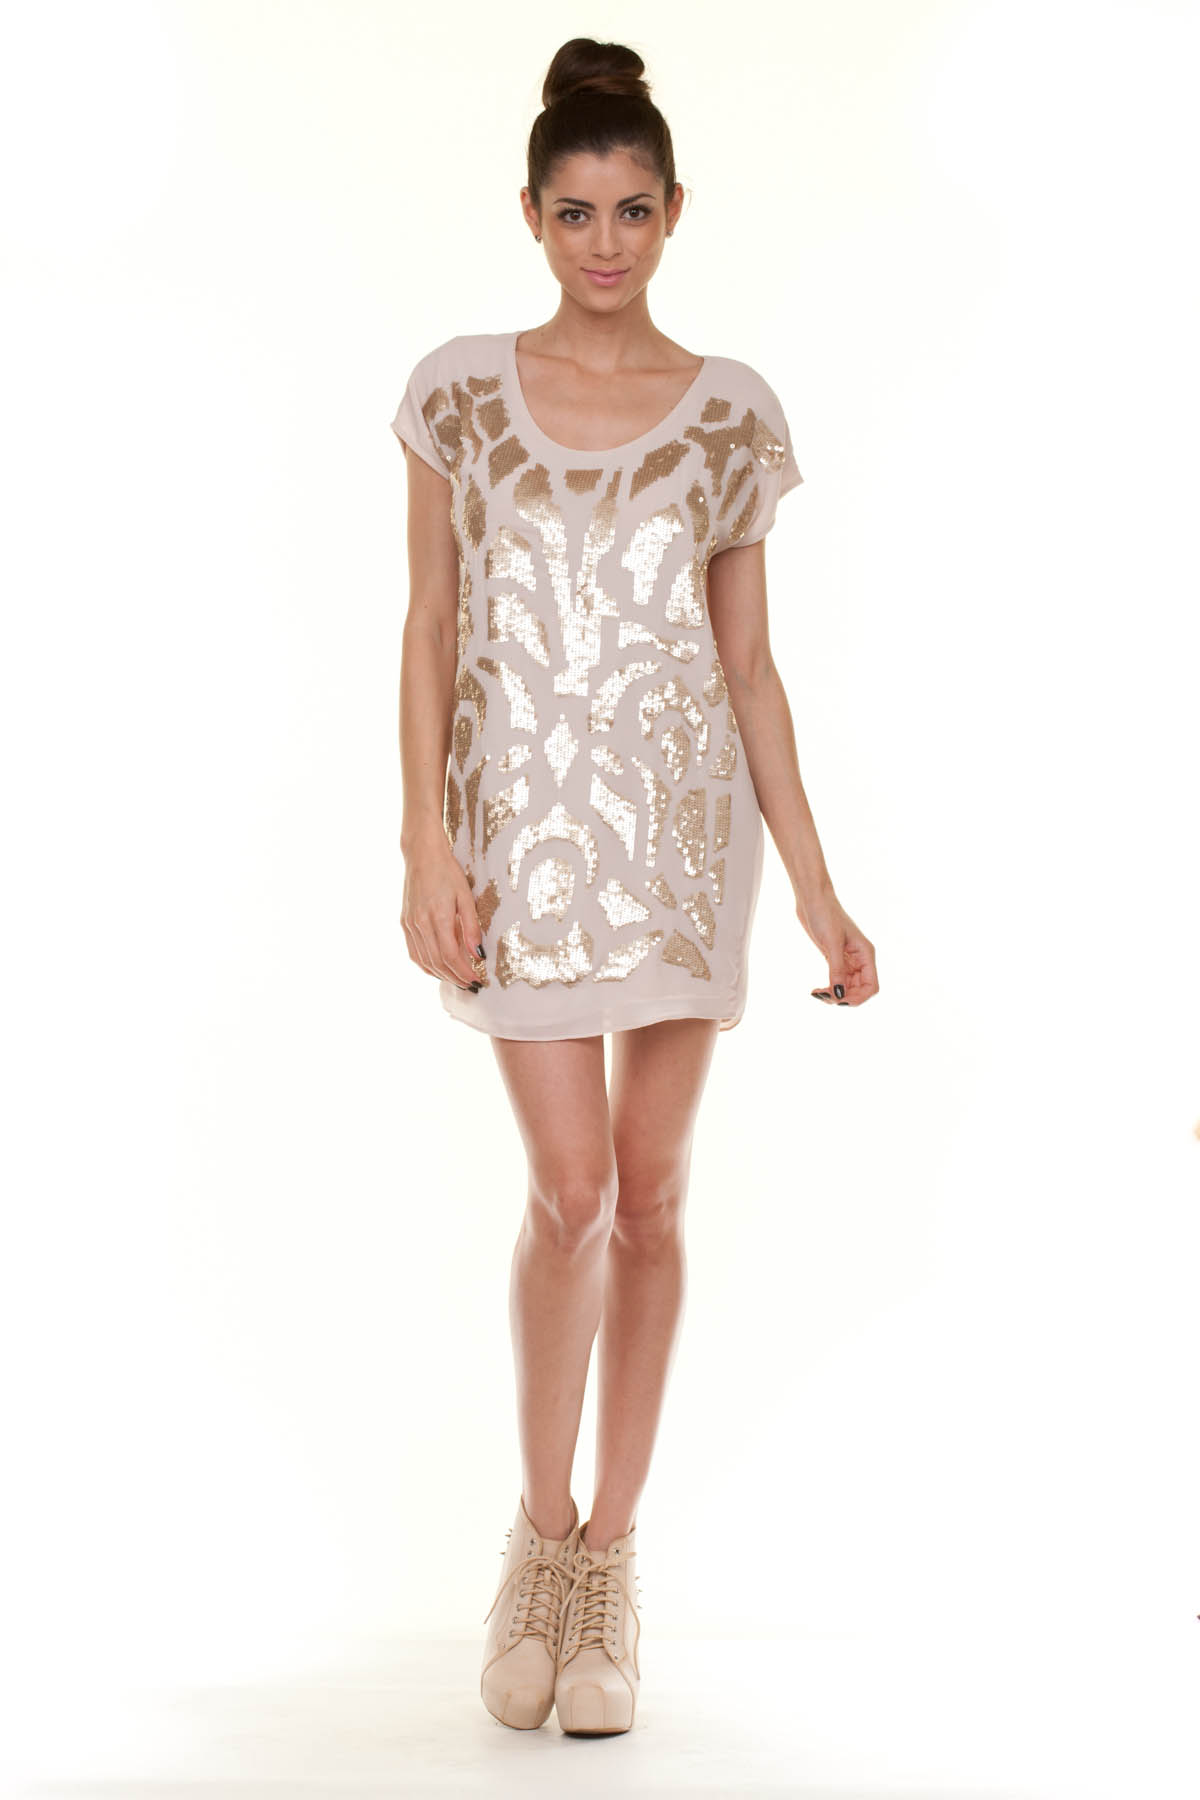 Where to buy a sequin dress